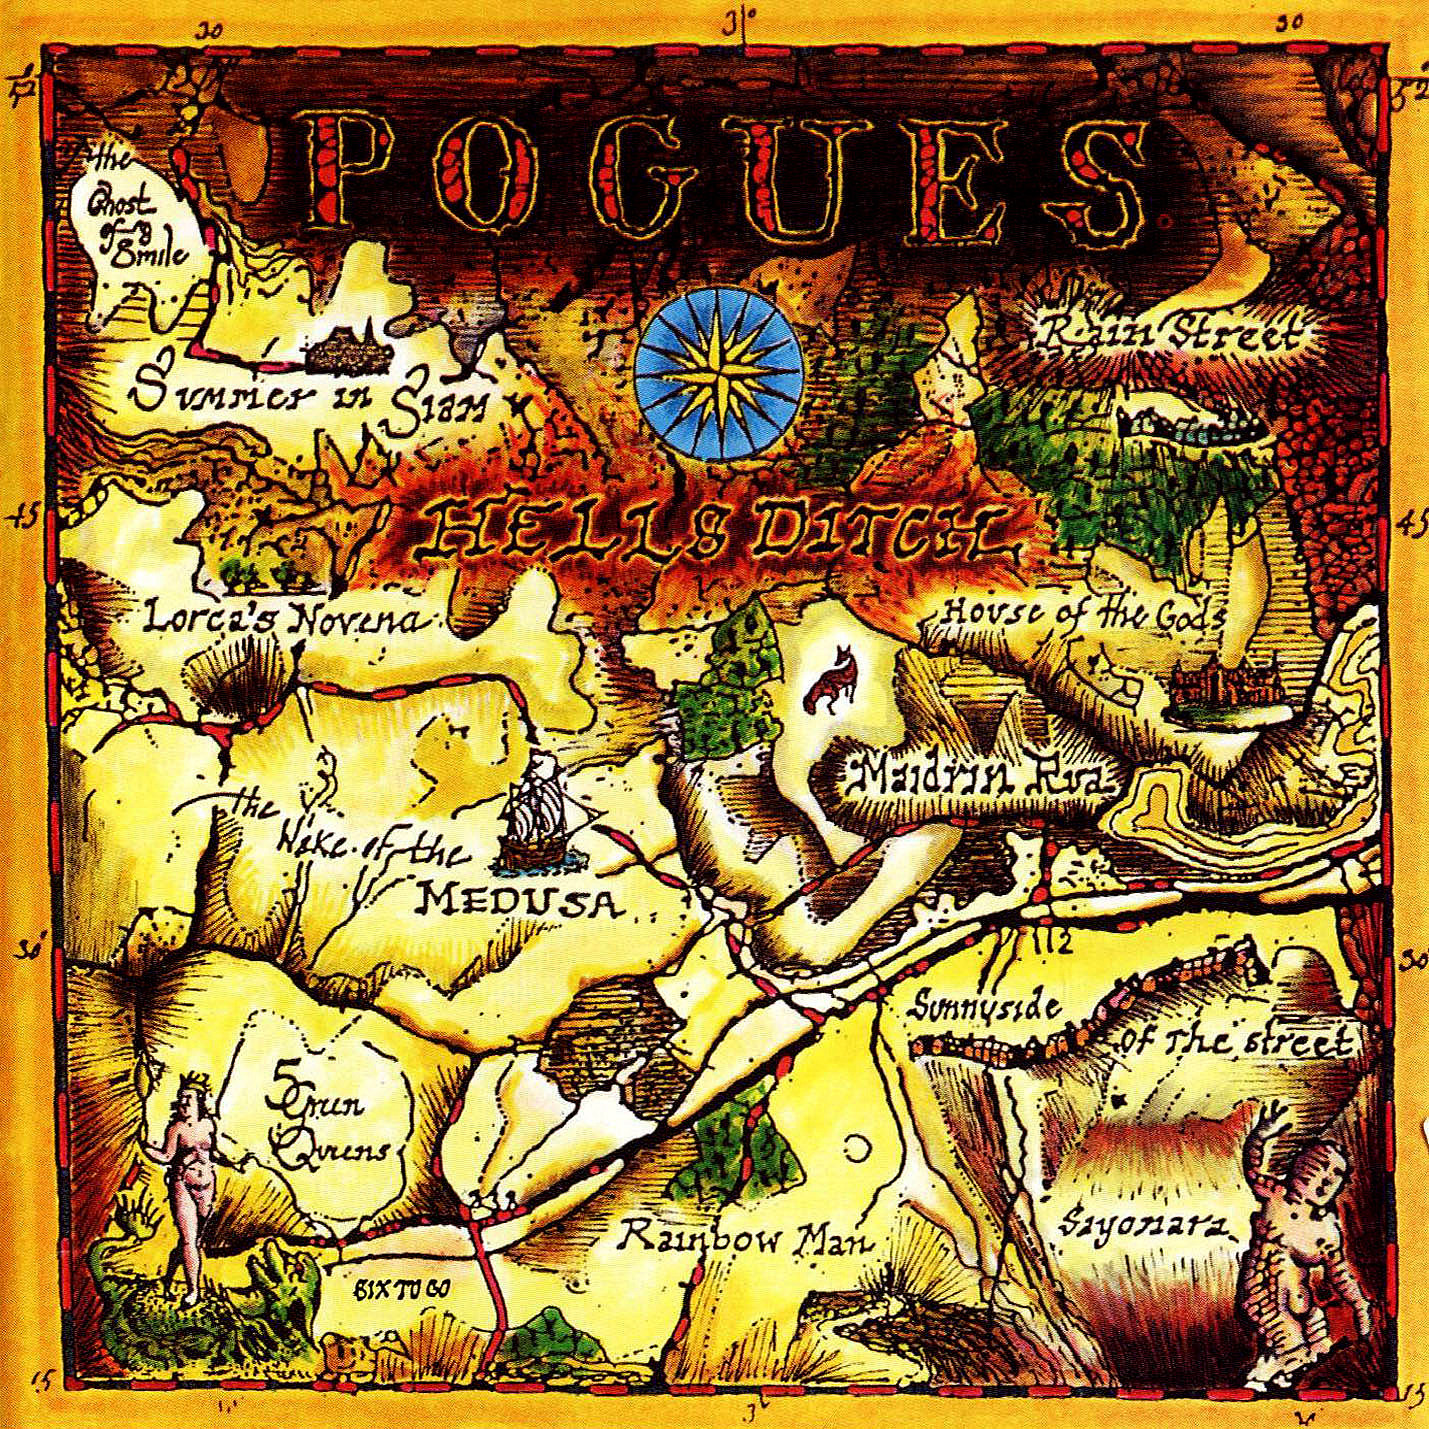 The Pogues Hell S Ditch Album 25 Years Ago Turn